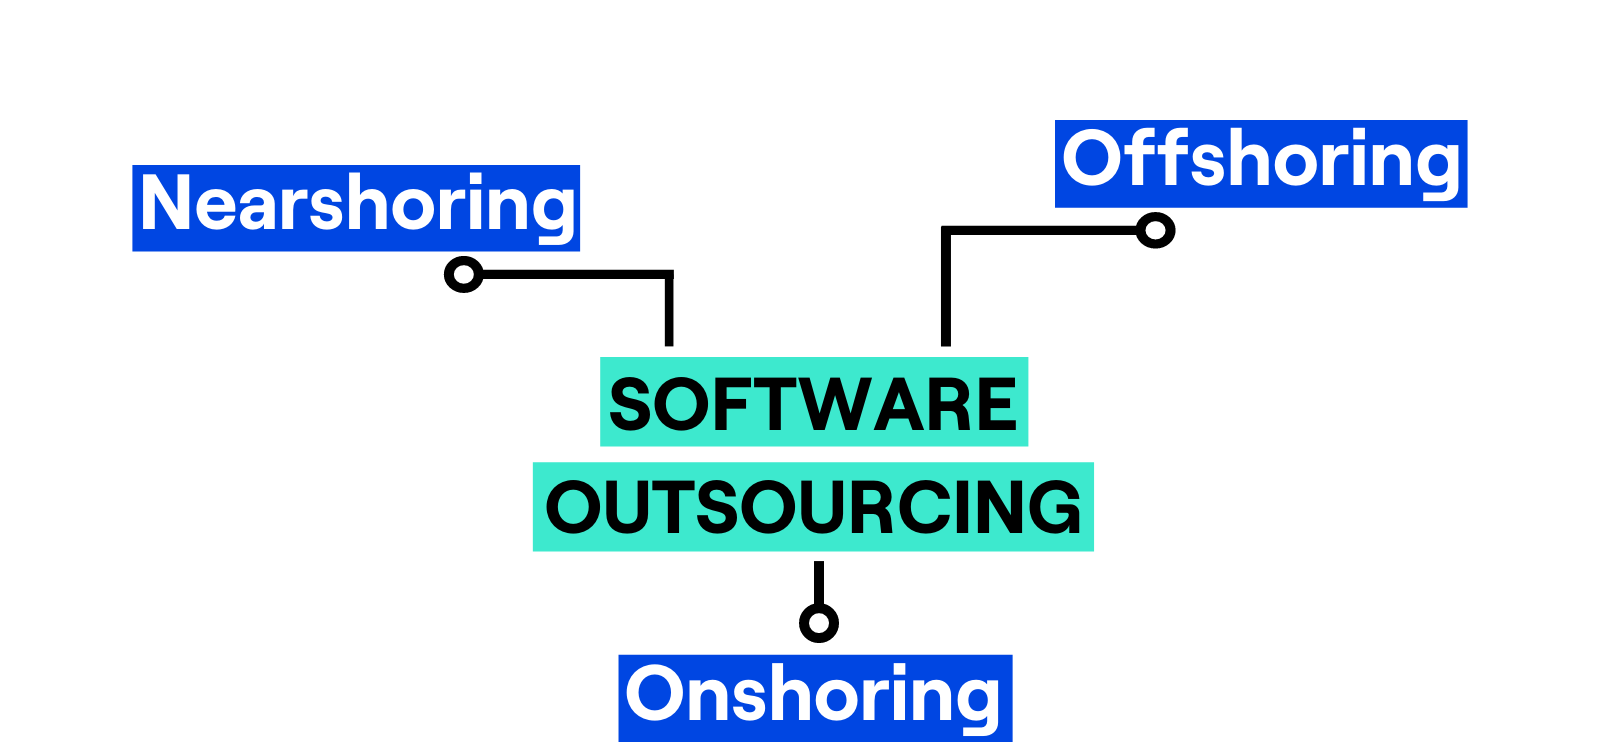 Outsourcing - nearshoring, offshoring and onshoring (1)-1